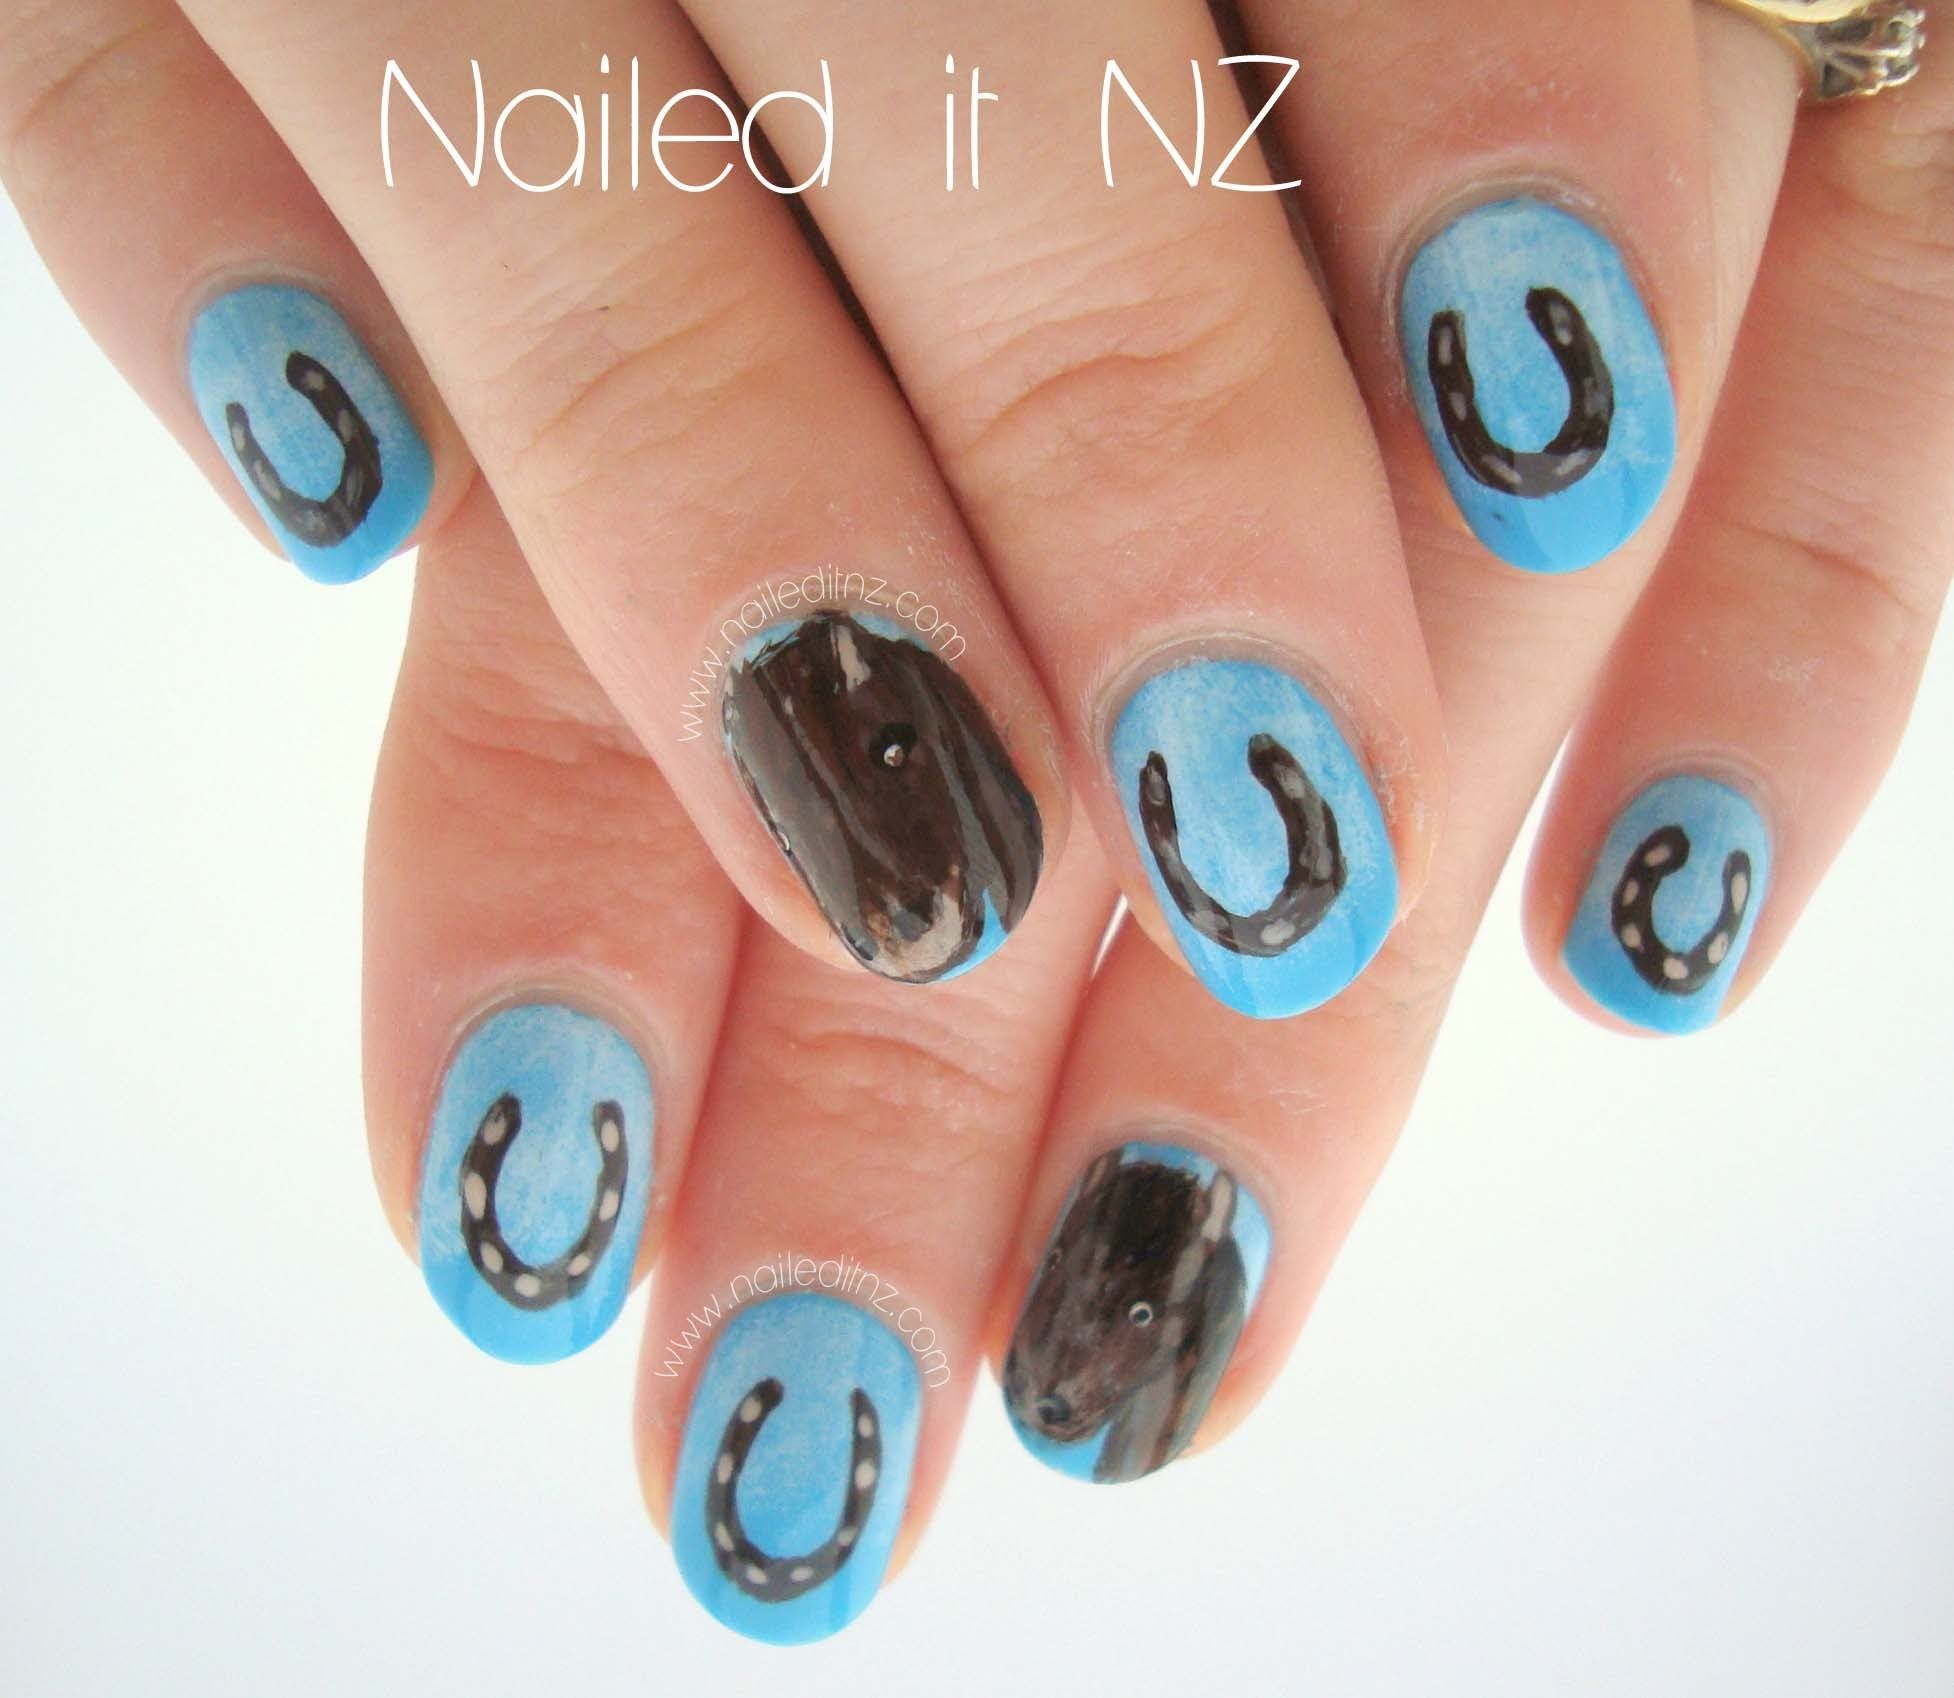 country nail designs - Google Search | Nails | Pinterest | Country nails